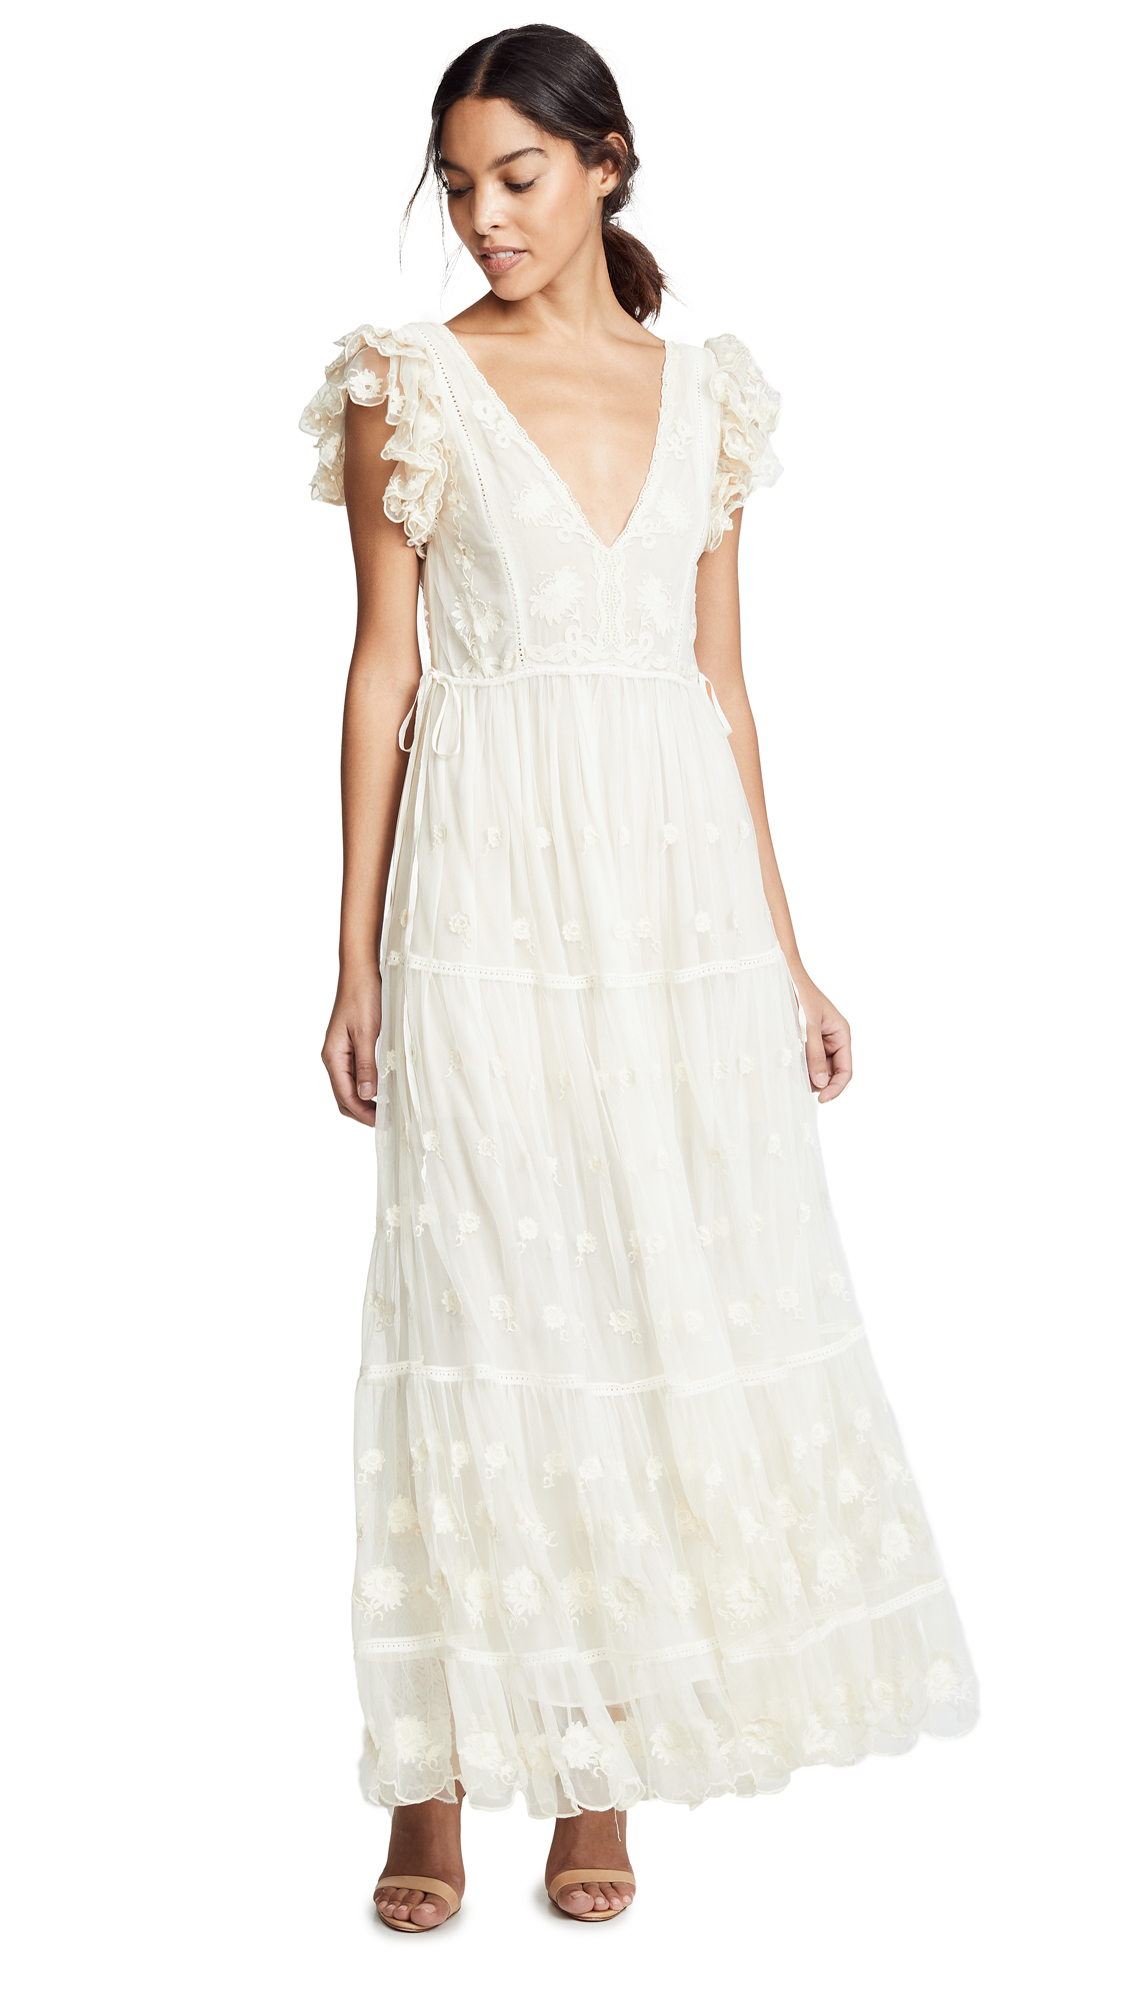 Ulla Johnson Fifi Dress - Pearl